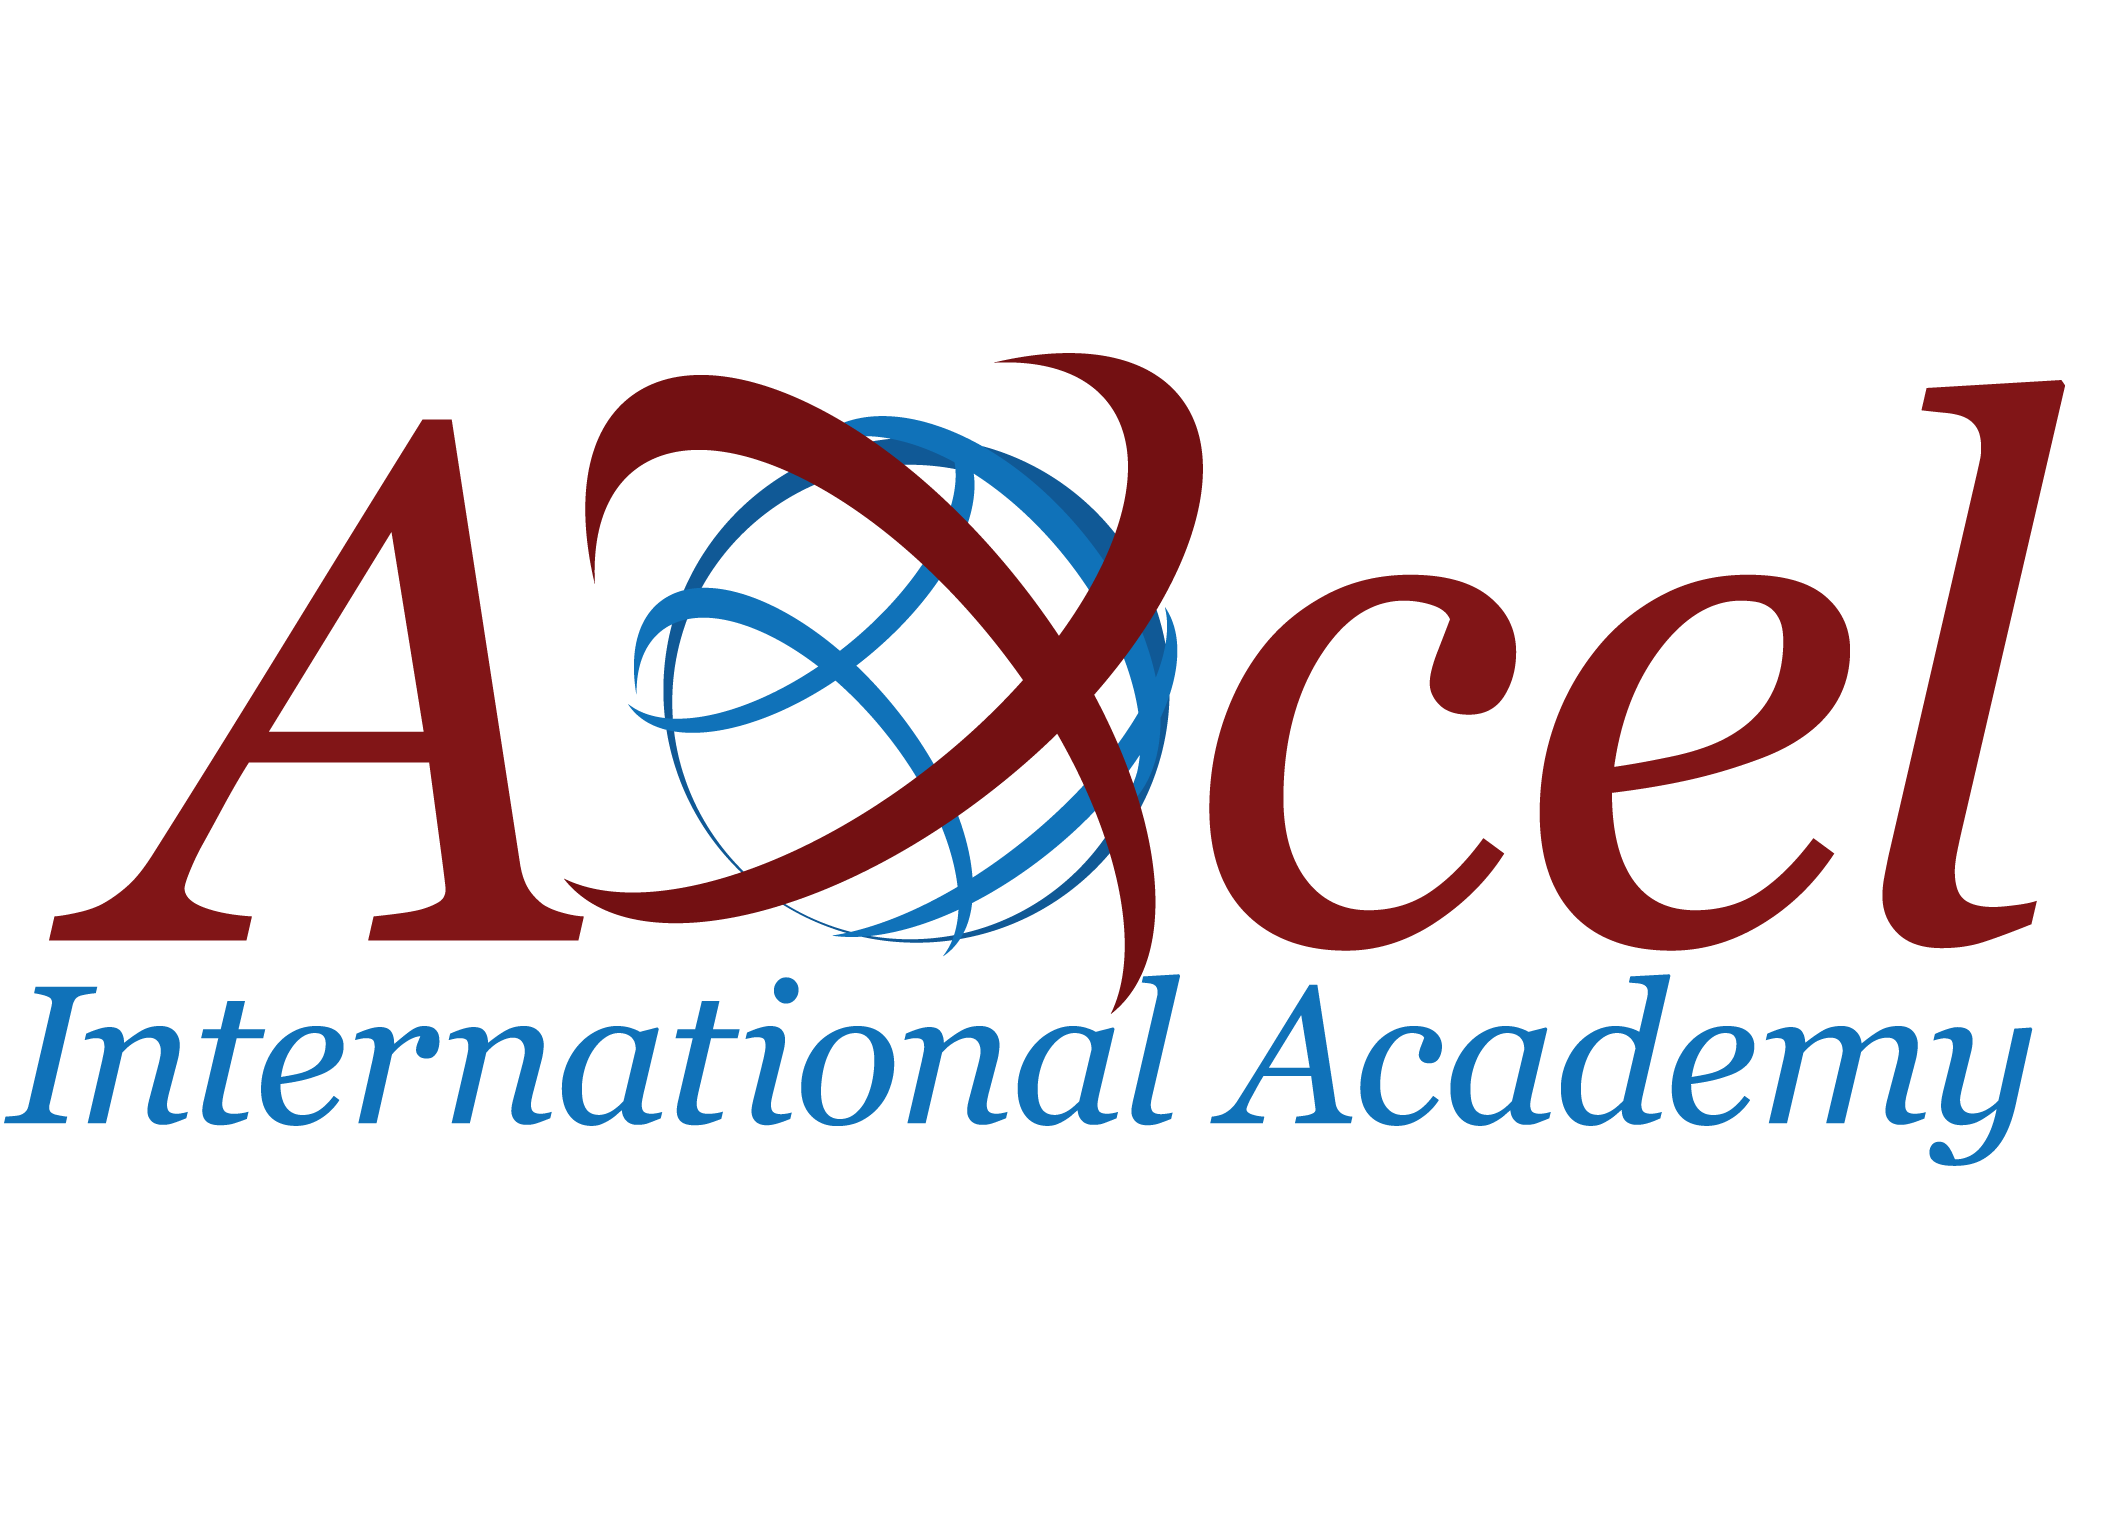 Axcel International Academy